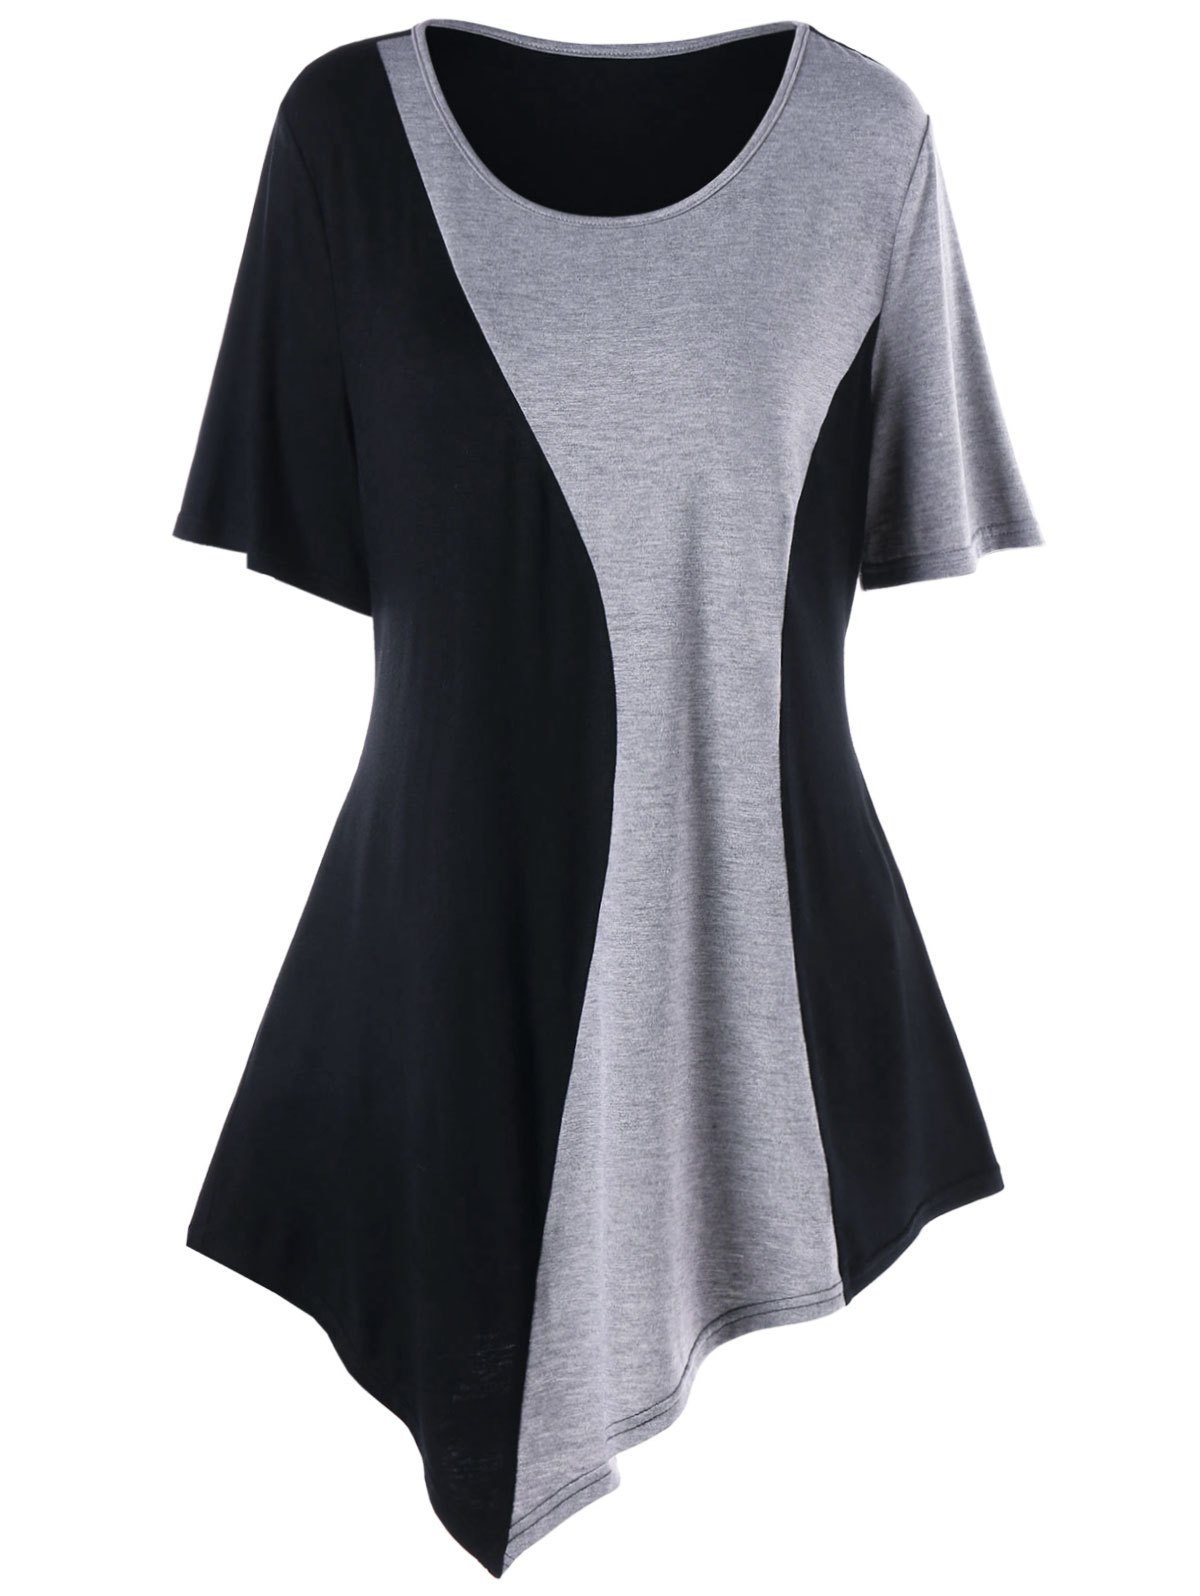 Plus Size Two Tone Asymmetric Longline T-shirt plus size v neck two tone t shirt